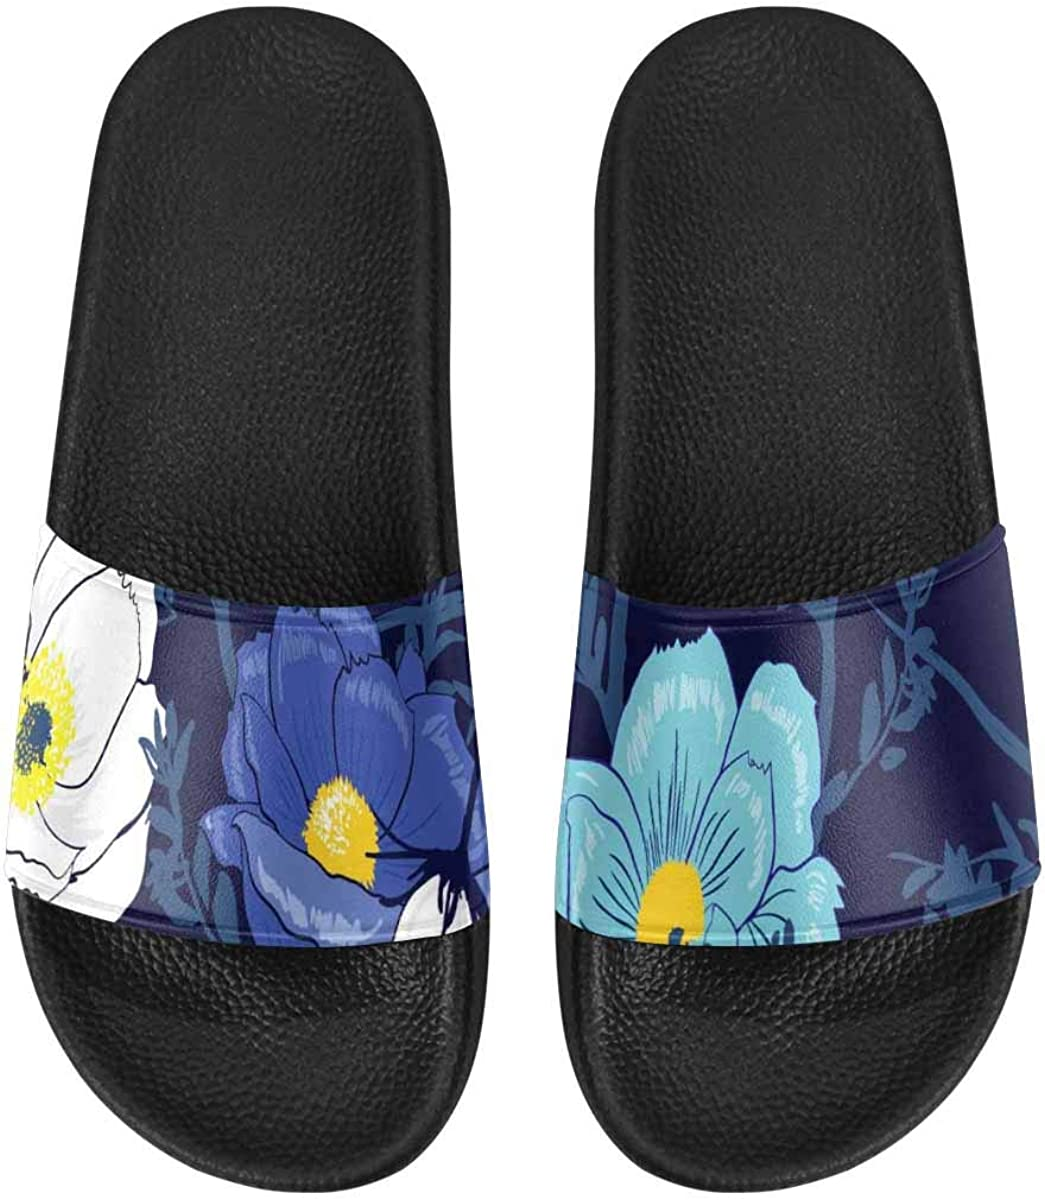 InterestPrint Women's Slide Sandals with PVC Straps and Sole Black Flowers Lace on Blue